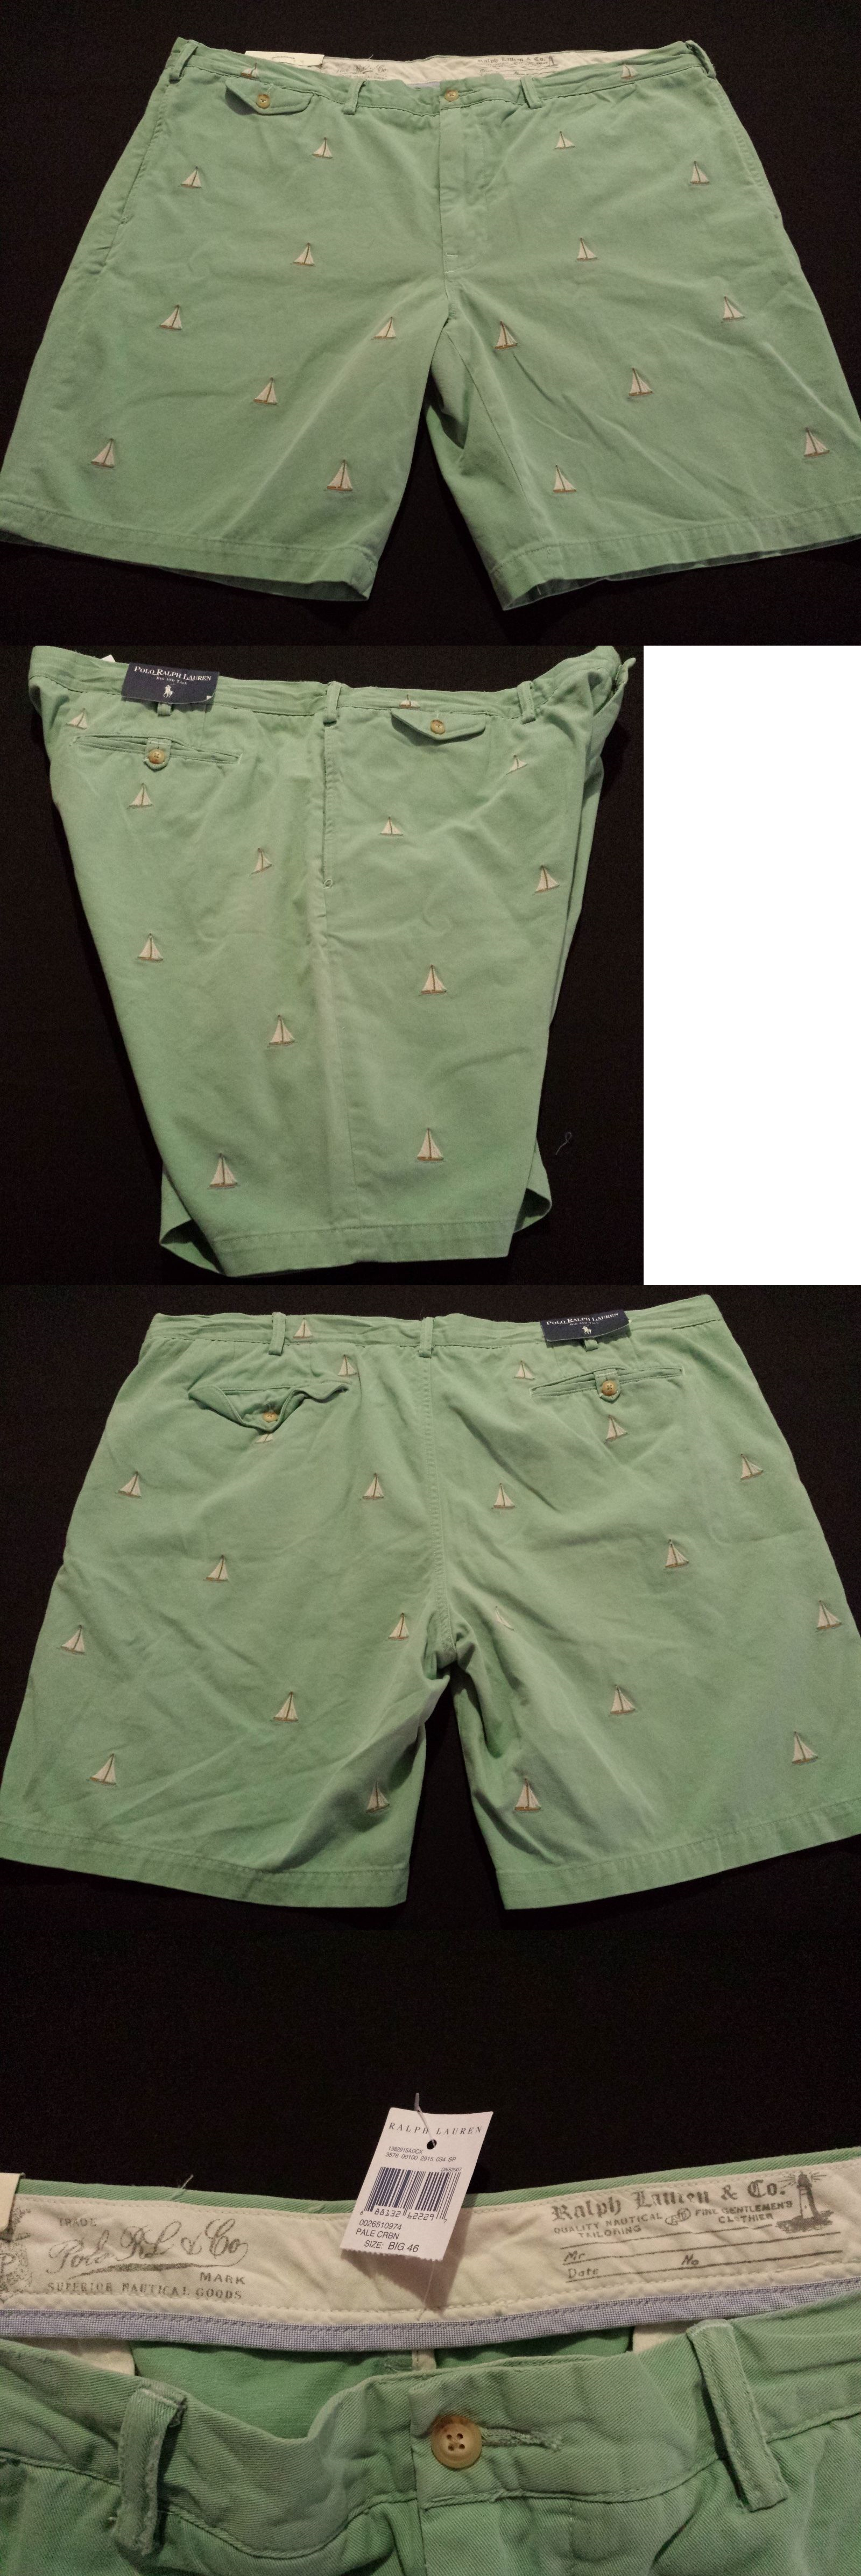 polo green ralph lauren camouflage shorts